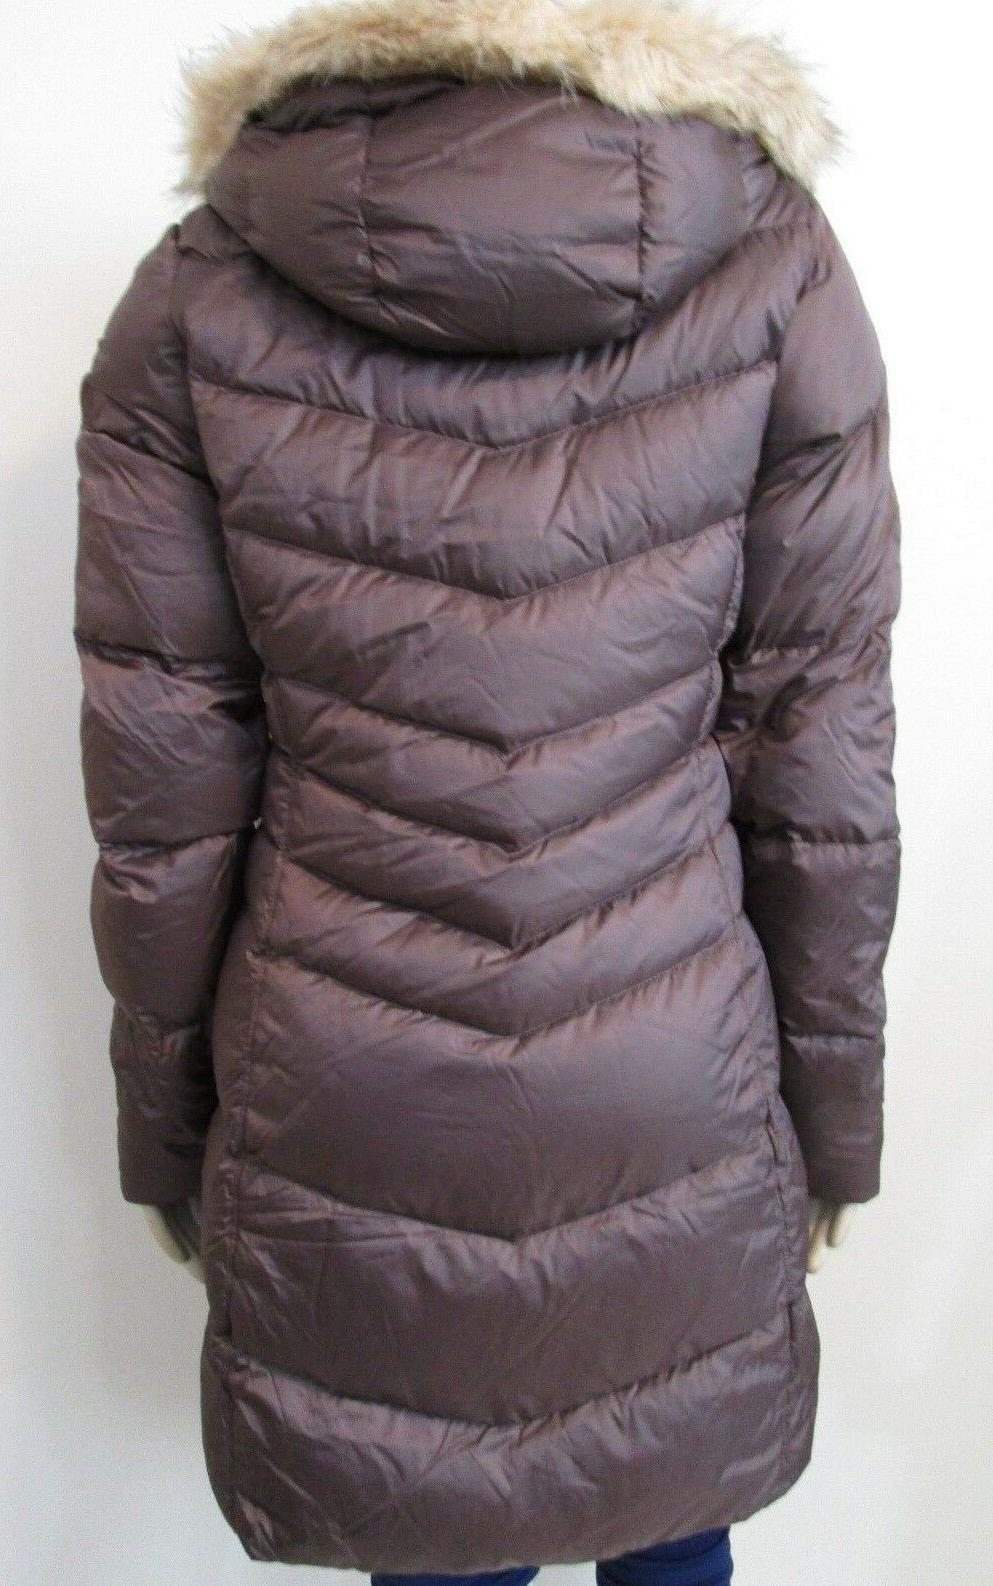 NWT Womens Mountain Downtown Insulated Jacket -